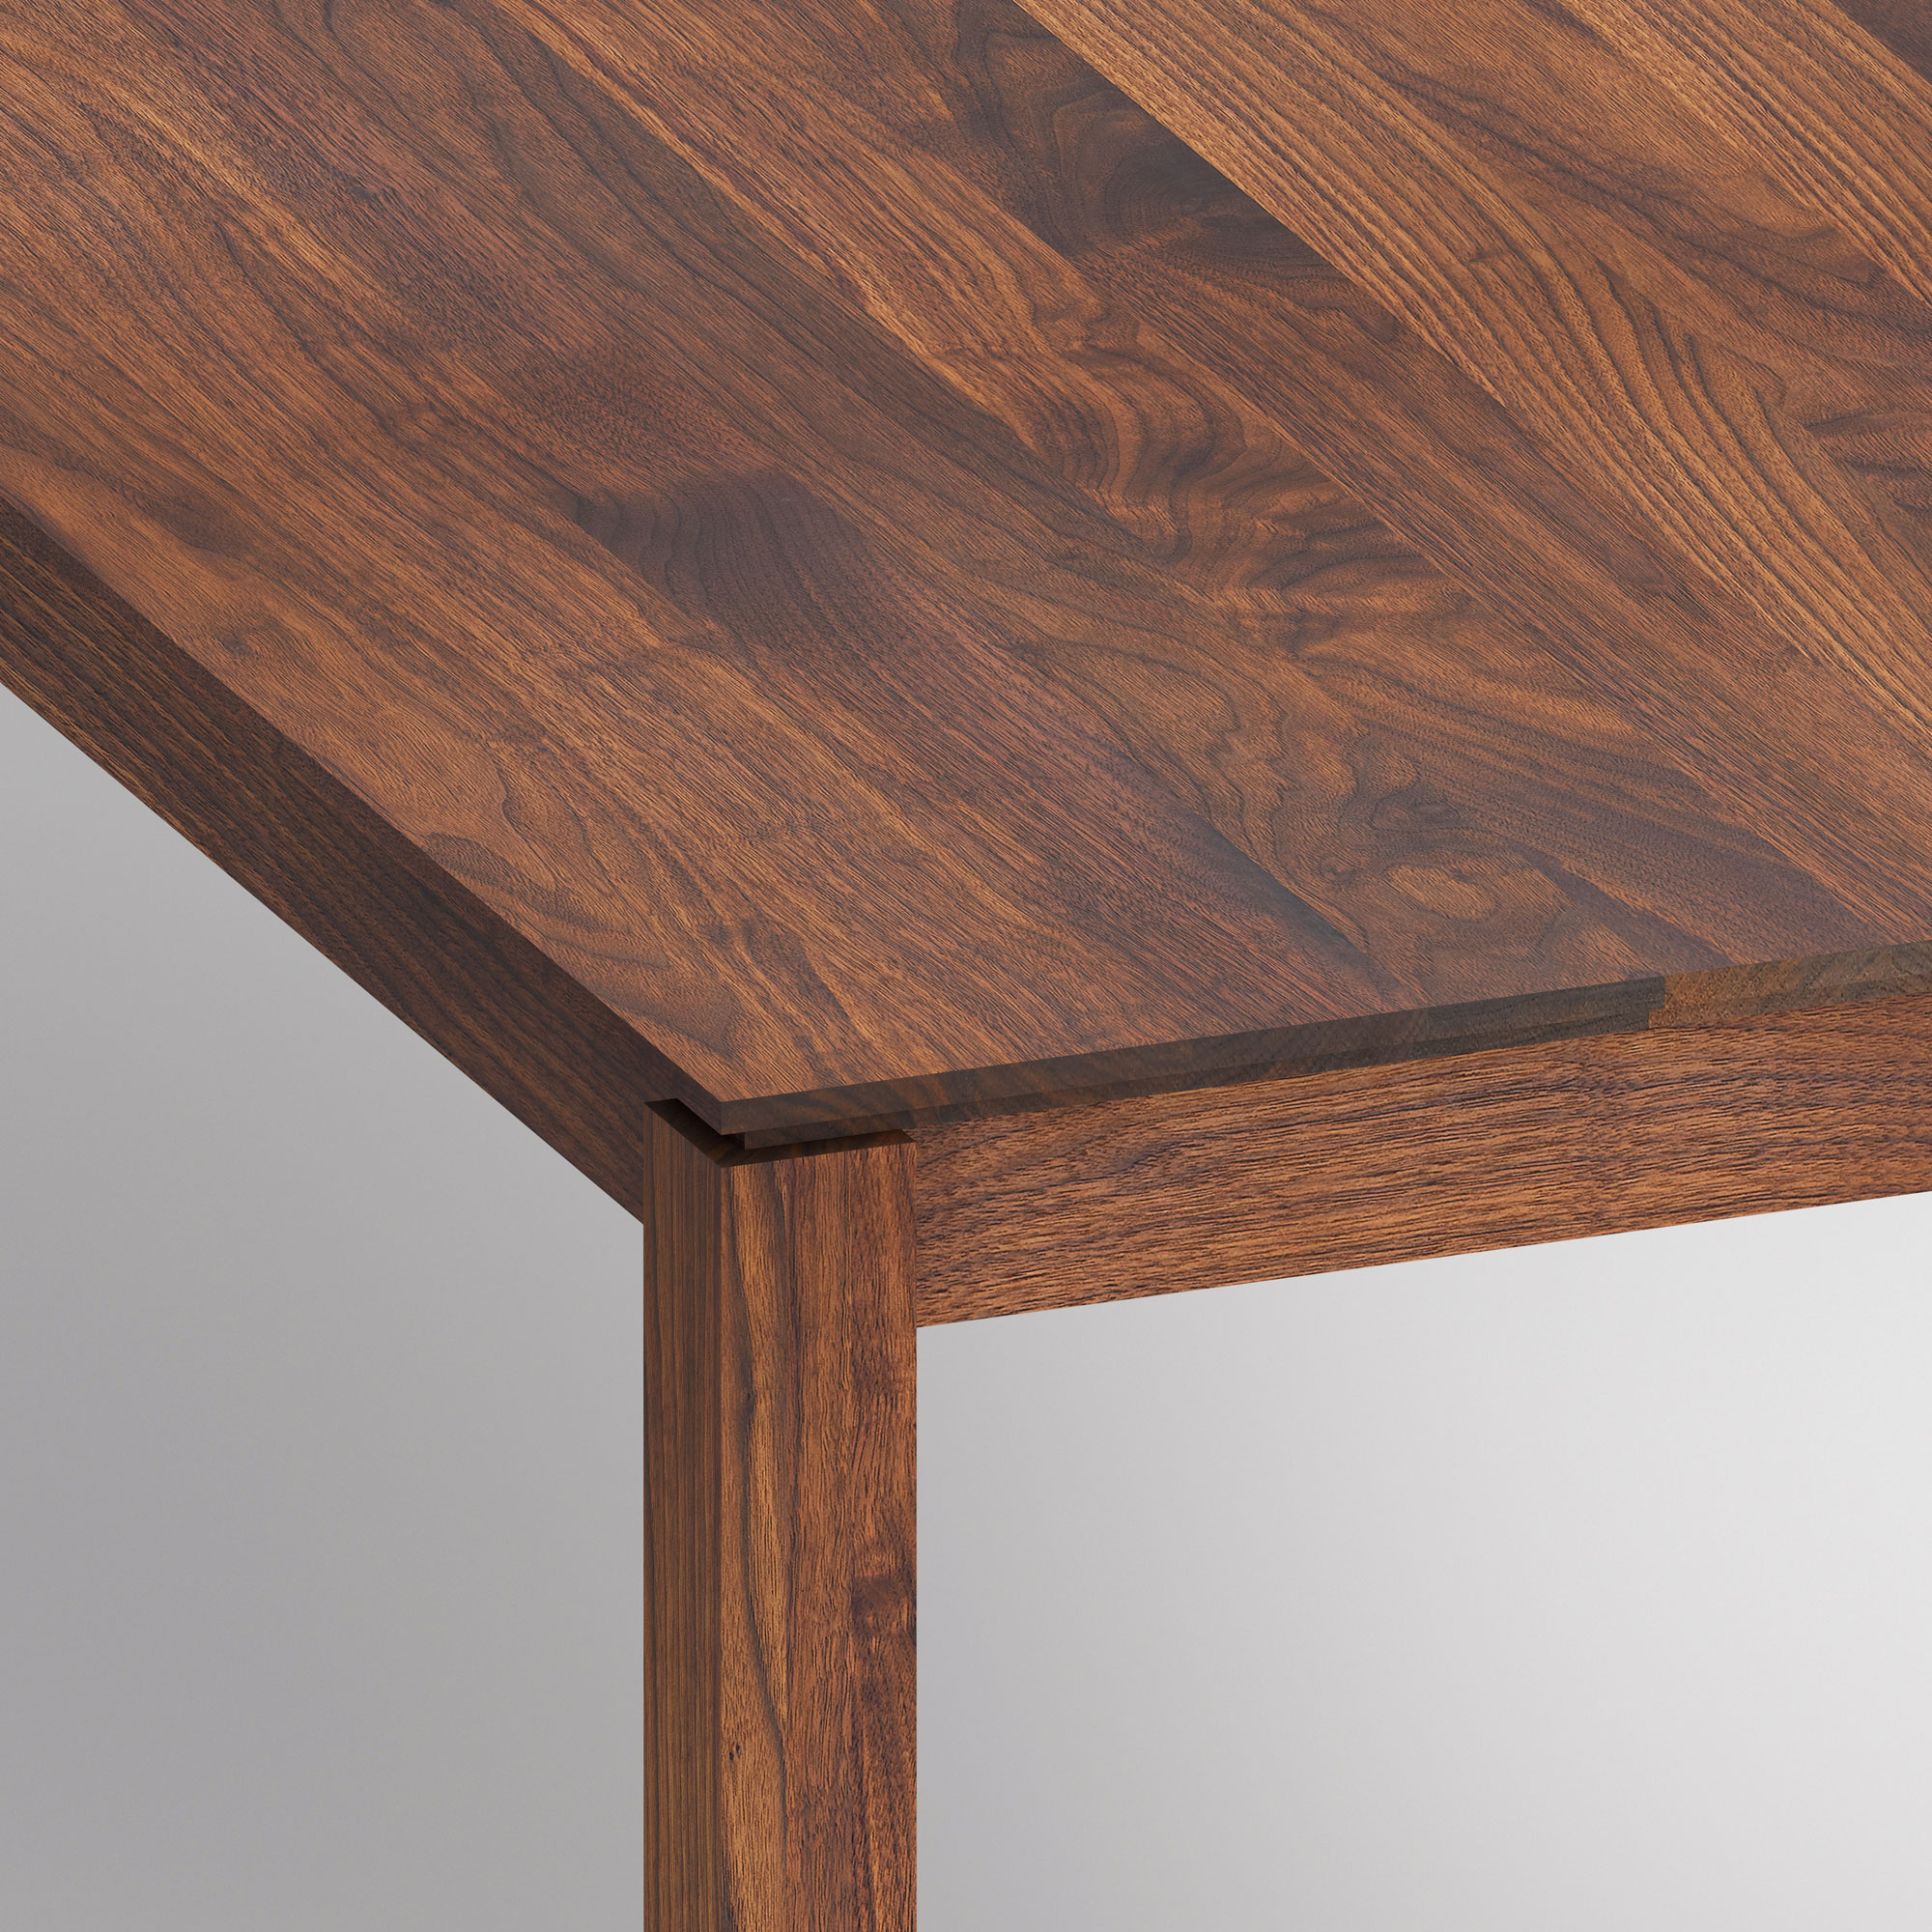 Extending Dining Table CONVERTO BUTTERFLY cam3 custom made in solid wood by vitamin design